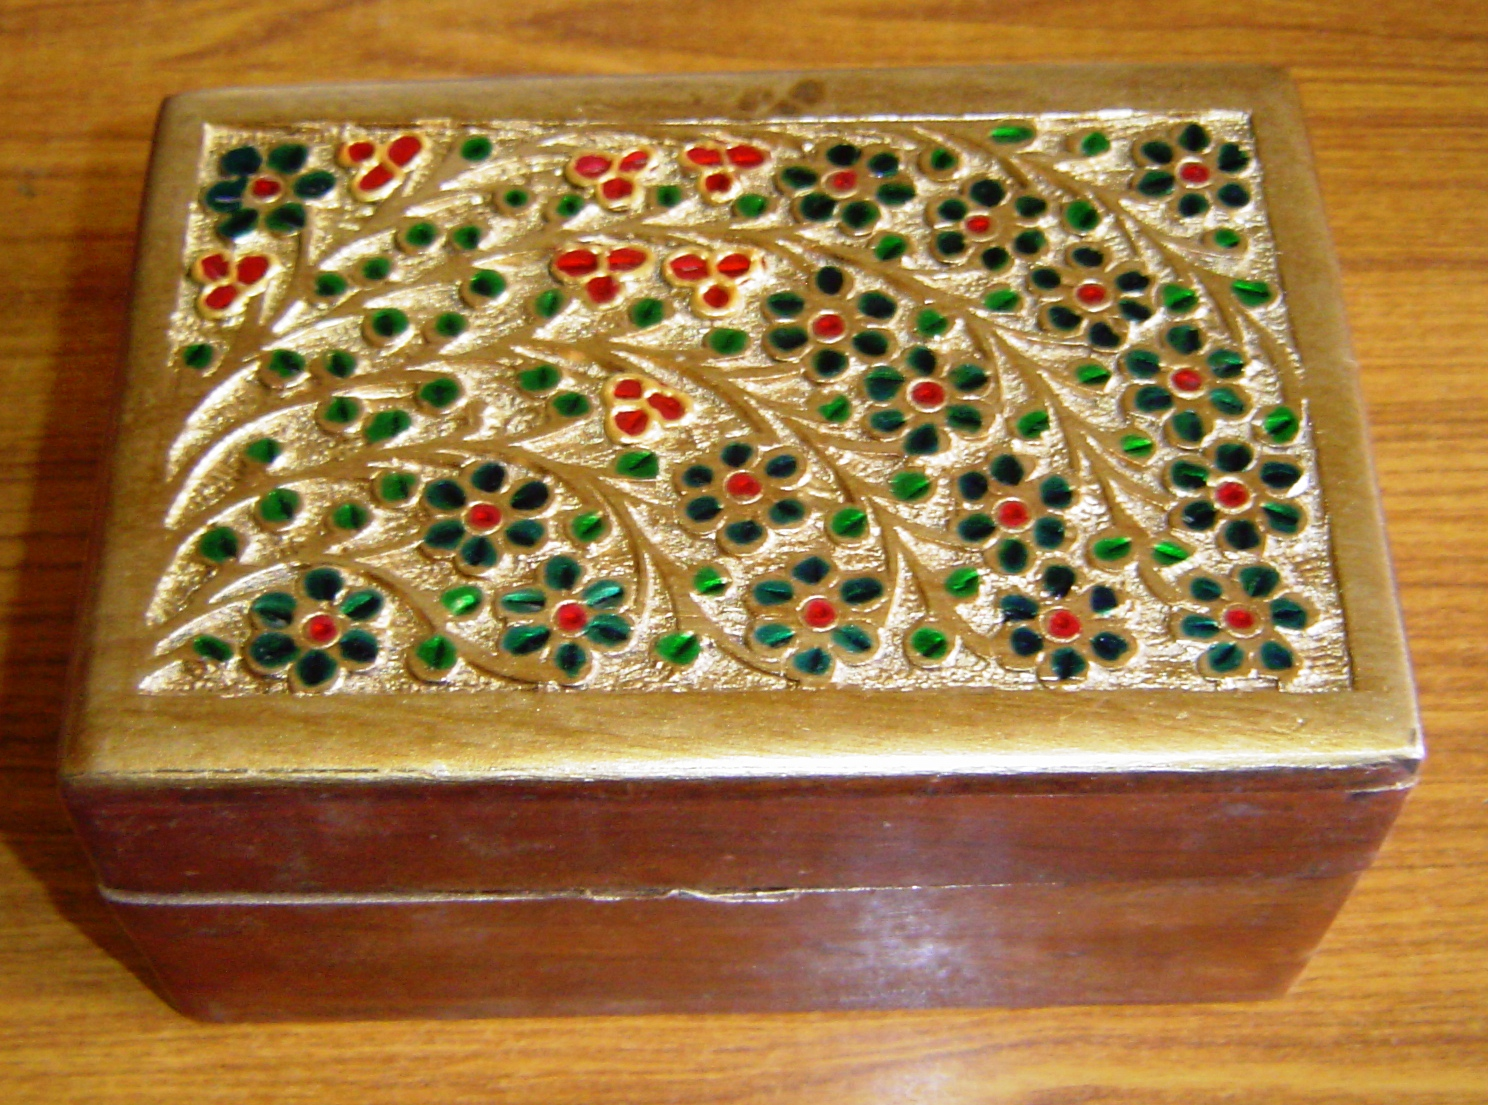 130058 Sheesham Wood carving and decorative box